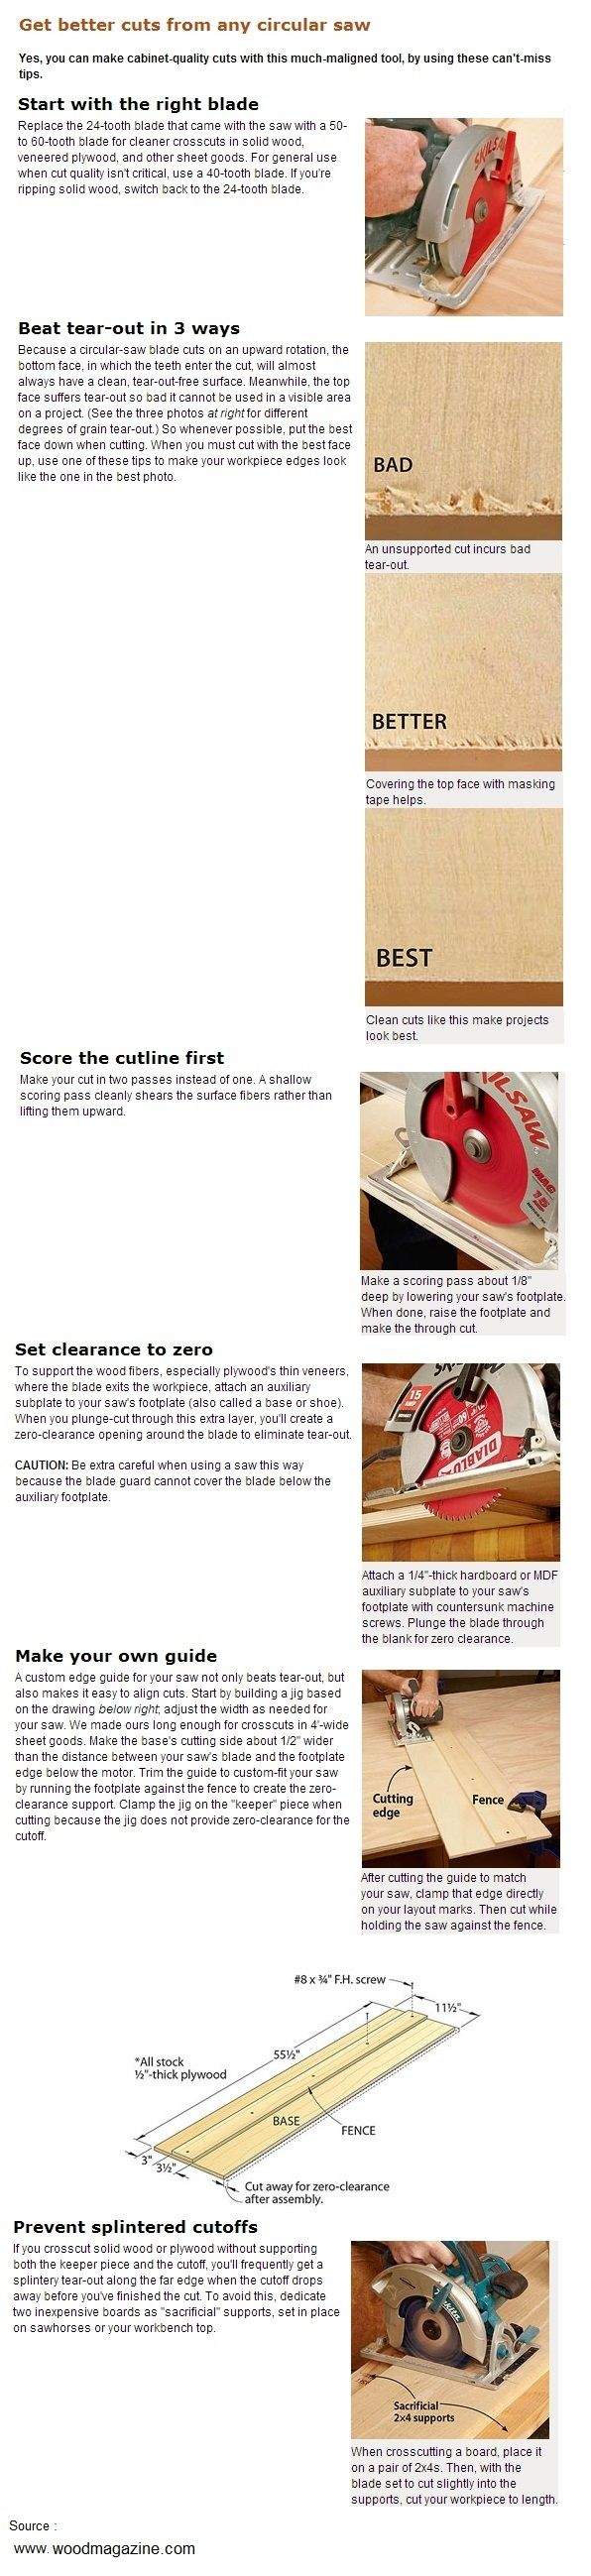 25 Best Tips Images By David Rath On Pinterest Carpentry Tools Seeking Advice For A Three Way Electrical Wiring Forum Gardenweb Get Better Cuts From Any Circular Saw